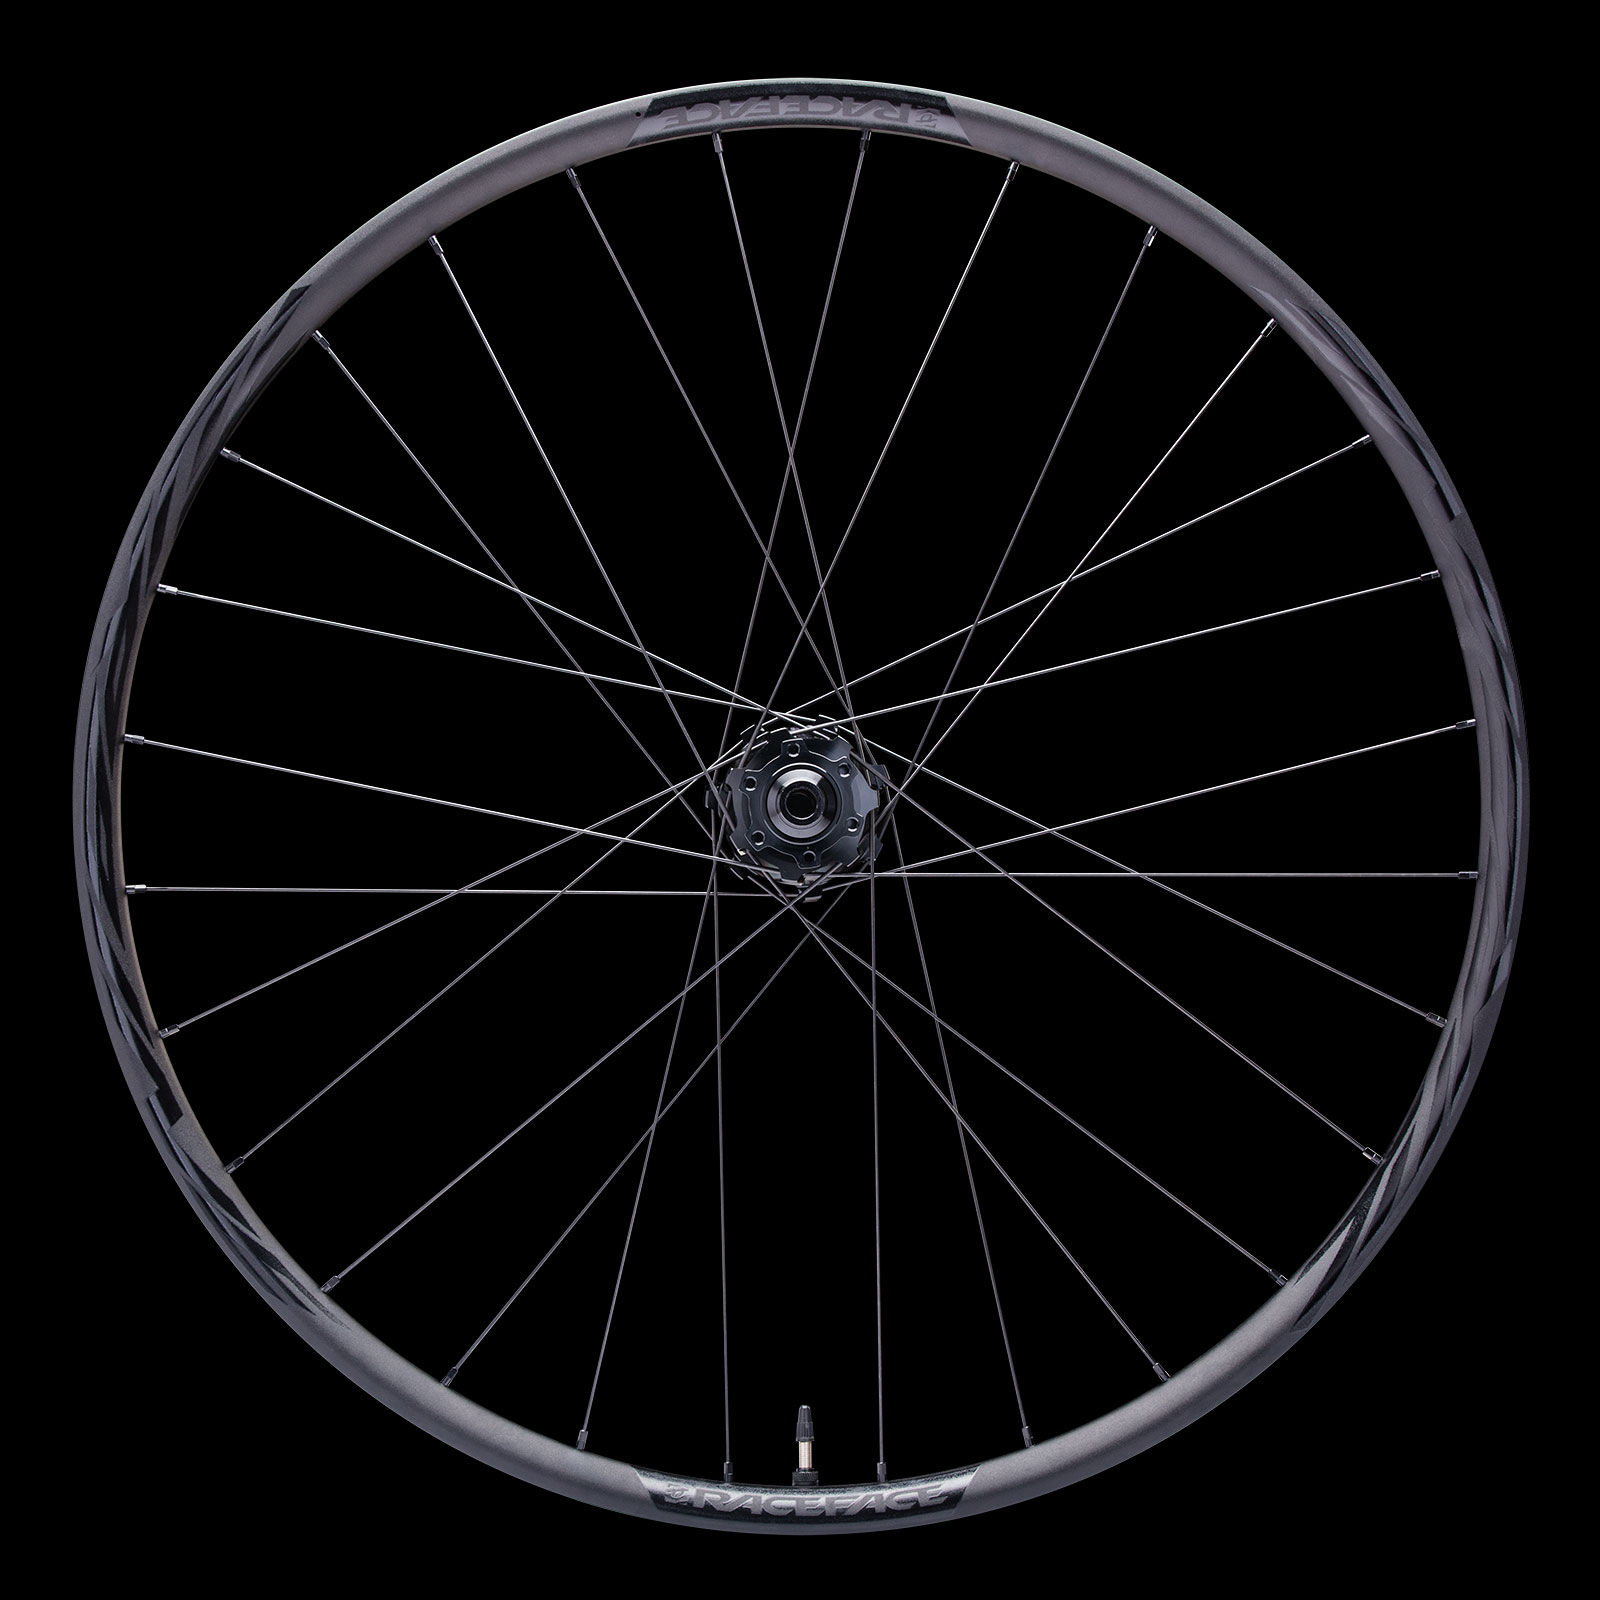 The Tubrine R wheelset has 28 spokes front and rear. Lacing is 3-cross.